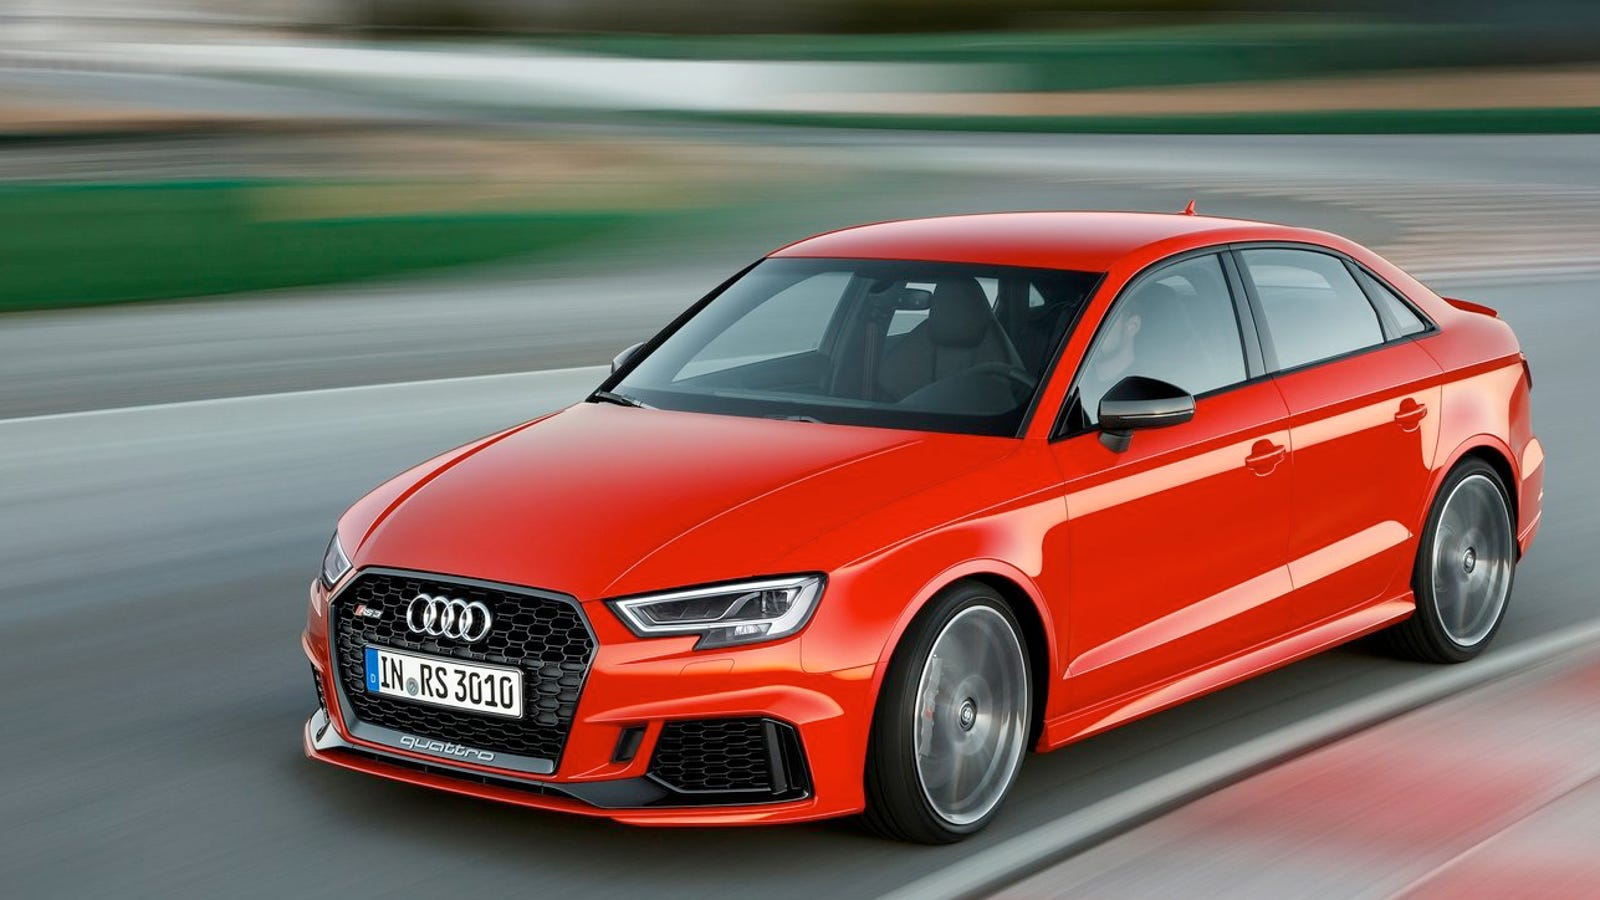 Take The Kids To School Real Damn Fast In The Audi RS Sedan For - Audi rs3